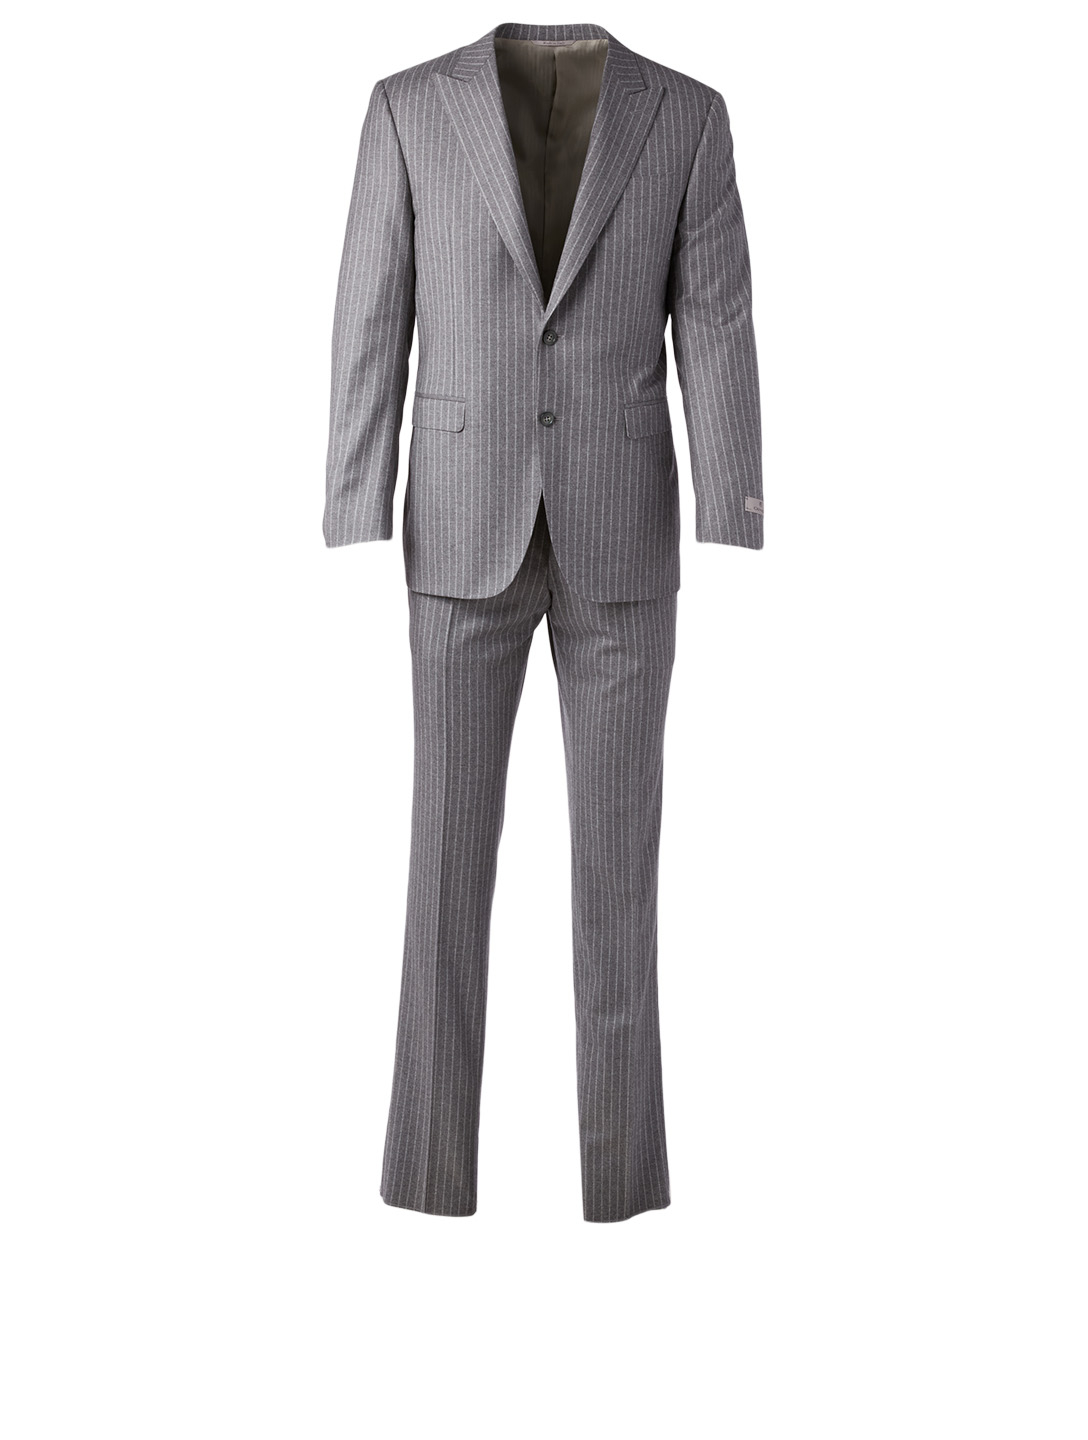 CANALI Wool Two-Piece Suit In Chalk Stripe Men's Grey